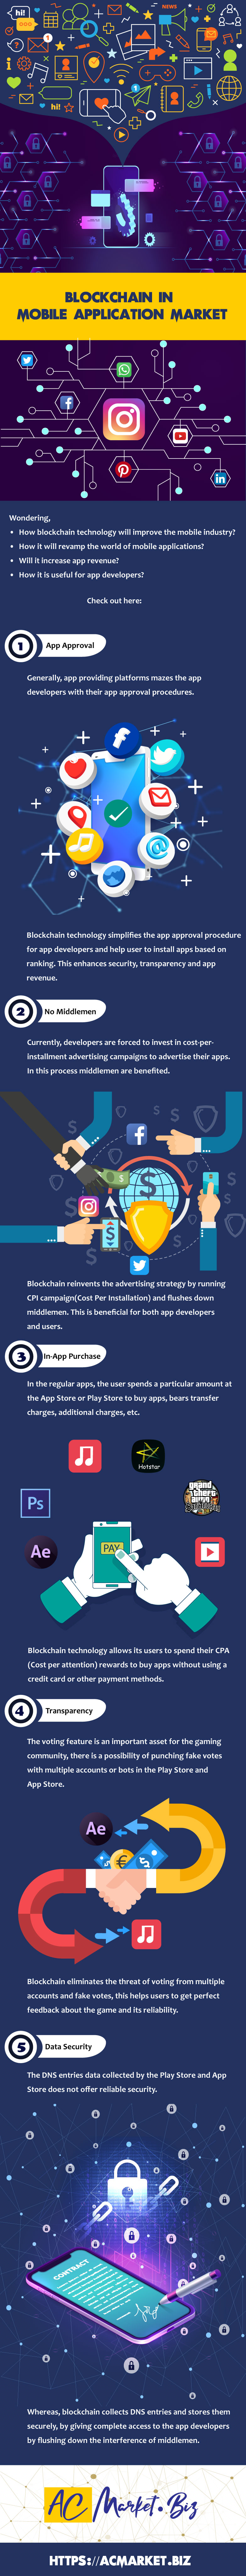 Wondering how blockchain technology will improve the mobile industry? Wondering how blockchain technology will revamp the world of mobile applications? Wondering how blockchain technology is useful for app developers? Blockchain technology simplifies the app approval procedure for app developers and help user to install apps based on ranking. This enhances security, transparency and app revenue. Blockchain technology entertain no middlemen. Currently, app developers are forced to invest in cost-per installment advertising campaigns to advertise their apps. In this process middlemen are benefited. Blockchain reinvents the advertising strategy by running CPI campaign (Cost Per Installation) and flushes down middlemen. This is beneficial for both app developers and users. In the regular apps, the user spends a particular amount at the App Store or Play Store to buy apps, bears transfer charges, additional charges, etc. Blockchain technology allows its users to spend their CPA (Cost per attention) rewards to buy apps without using a credit card or other payment methods. The voting feature is an important asset for the gaming community, there is a possibility of punching fake votes with multiple accounts or bots in the Play Store and App Store. Blockchain eliminates the threat of voting from multiple accounts and fake votes, this helps users to get perfect feedback about the game and its reliability. The DNS entries data collected by the Play Store and App Store does not offer reliable security. Whereas, blockchain collects DNS entries and stores them securely, by giving complete access to the app developers by flushing down the interference of middlemen.